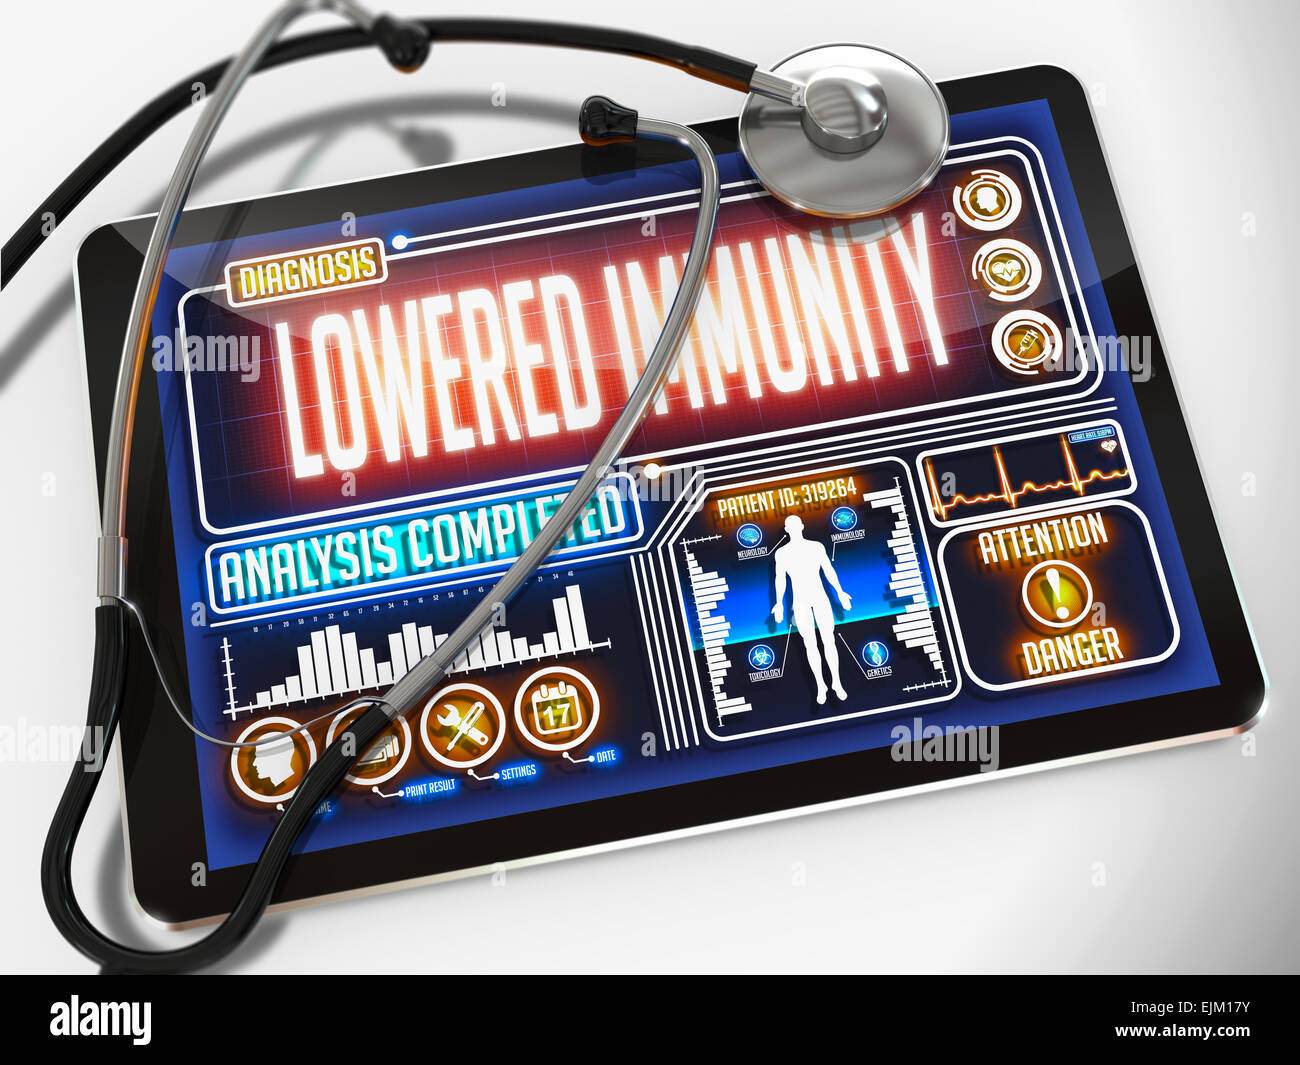 Lowered Immunity on the Display of Medical Tablet. - Stock Image